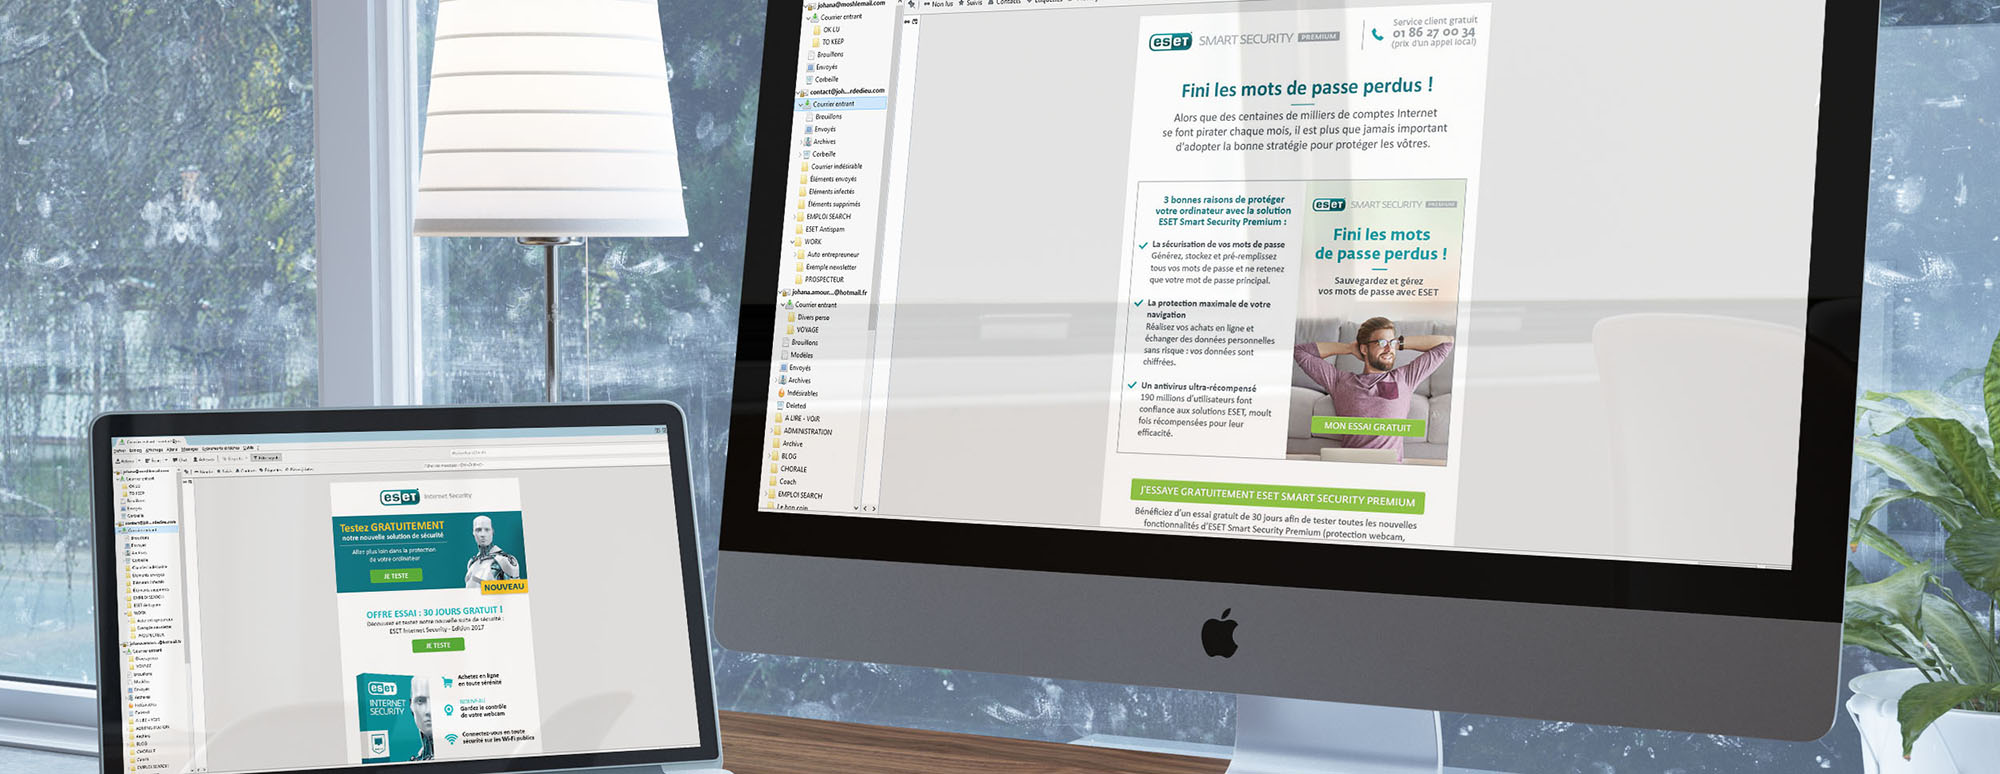 newsletter, Eset, graphiste freelance